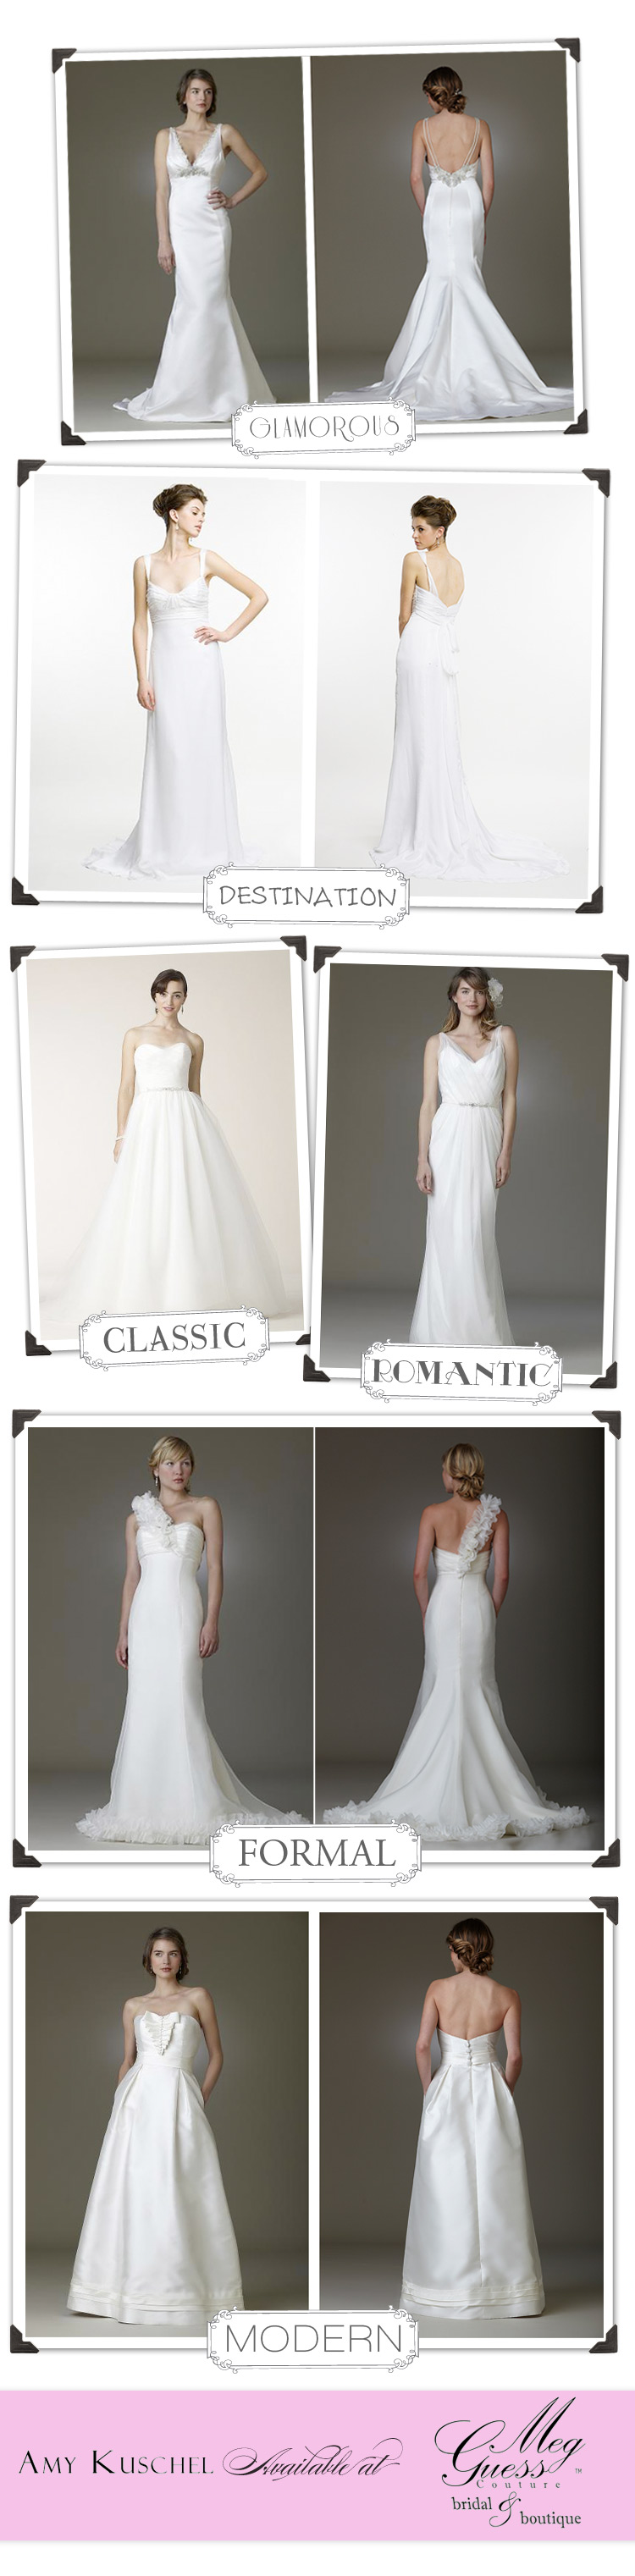 Amy Kuschel wedding gowns available at Meg Guess Couture in Oklahoma City